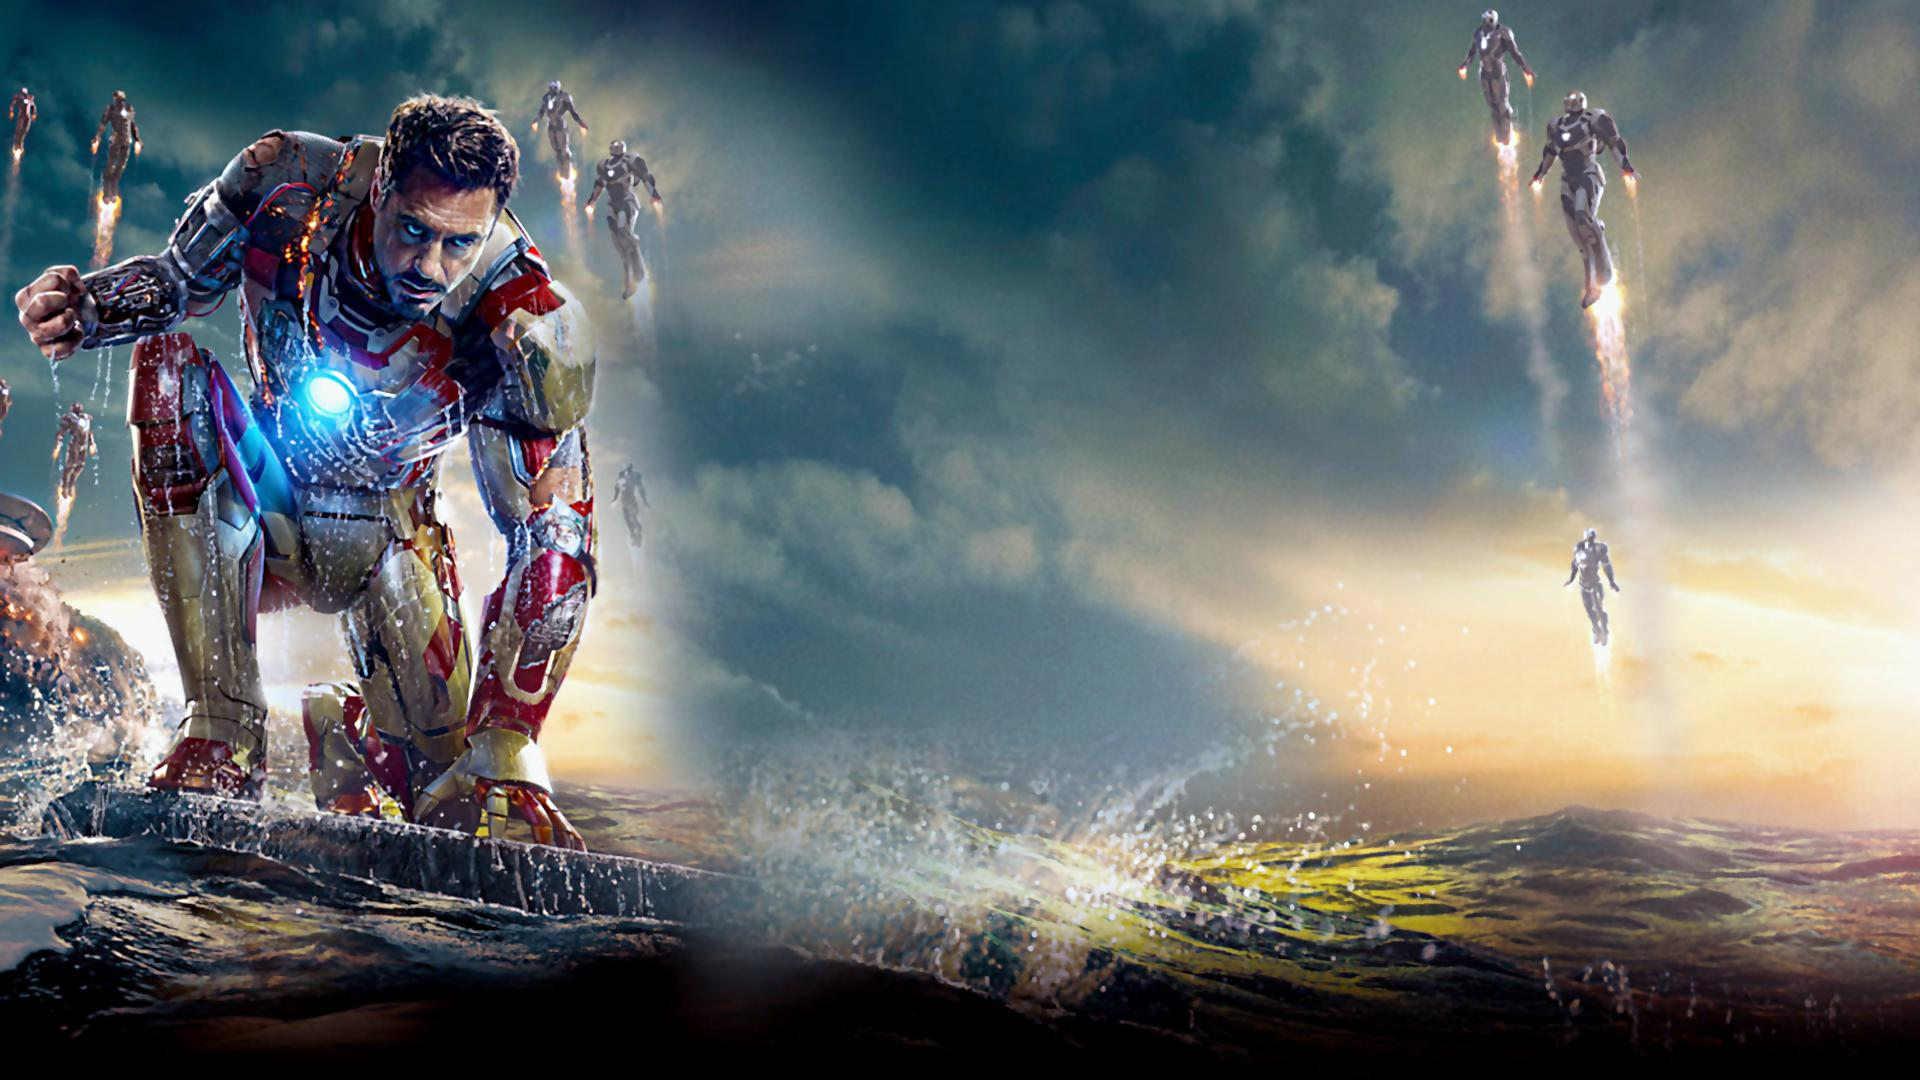 Iron Man Wallpapers HD download 1920x1080